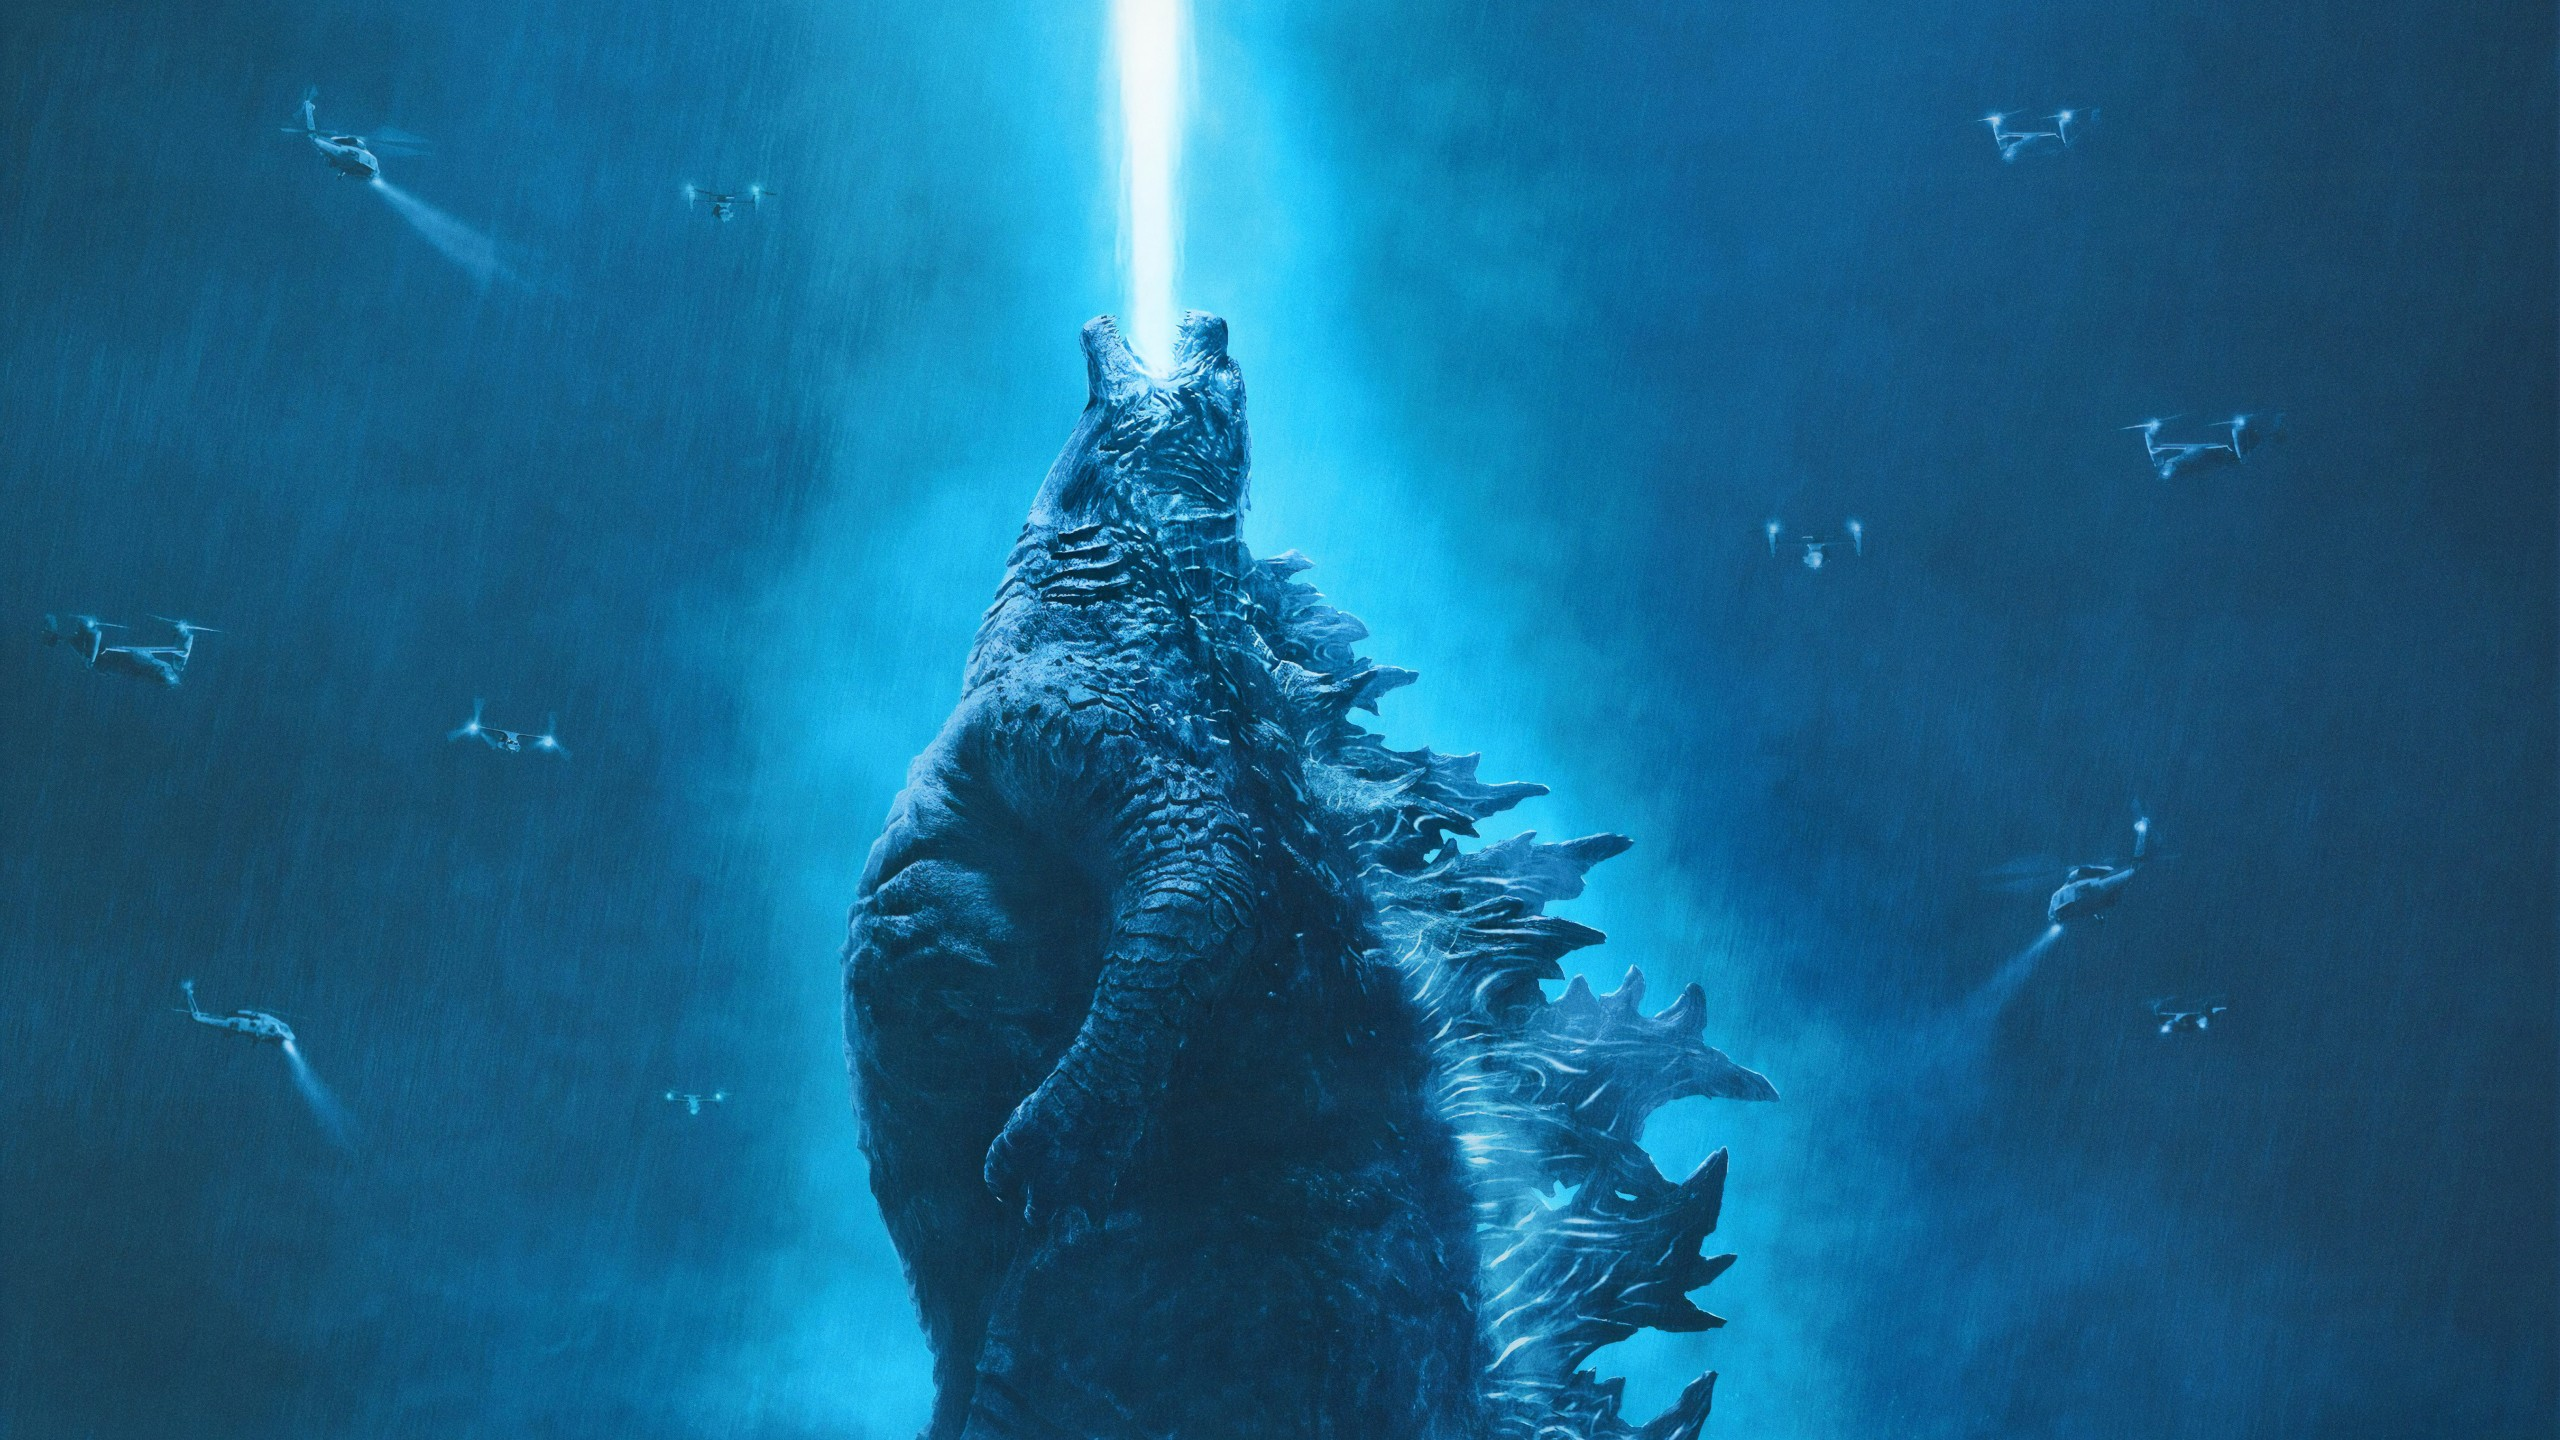 Iphone 5 Hd Wallpaper Abstract Godzilla King Of The Monsters 2019 5k Wallpapers Hd